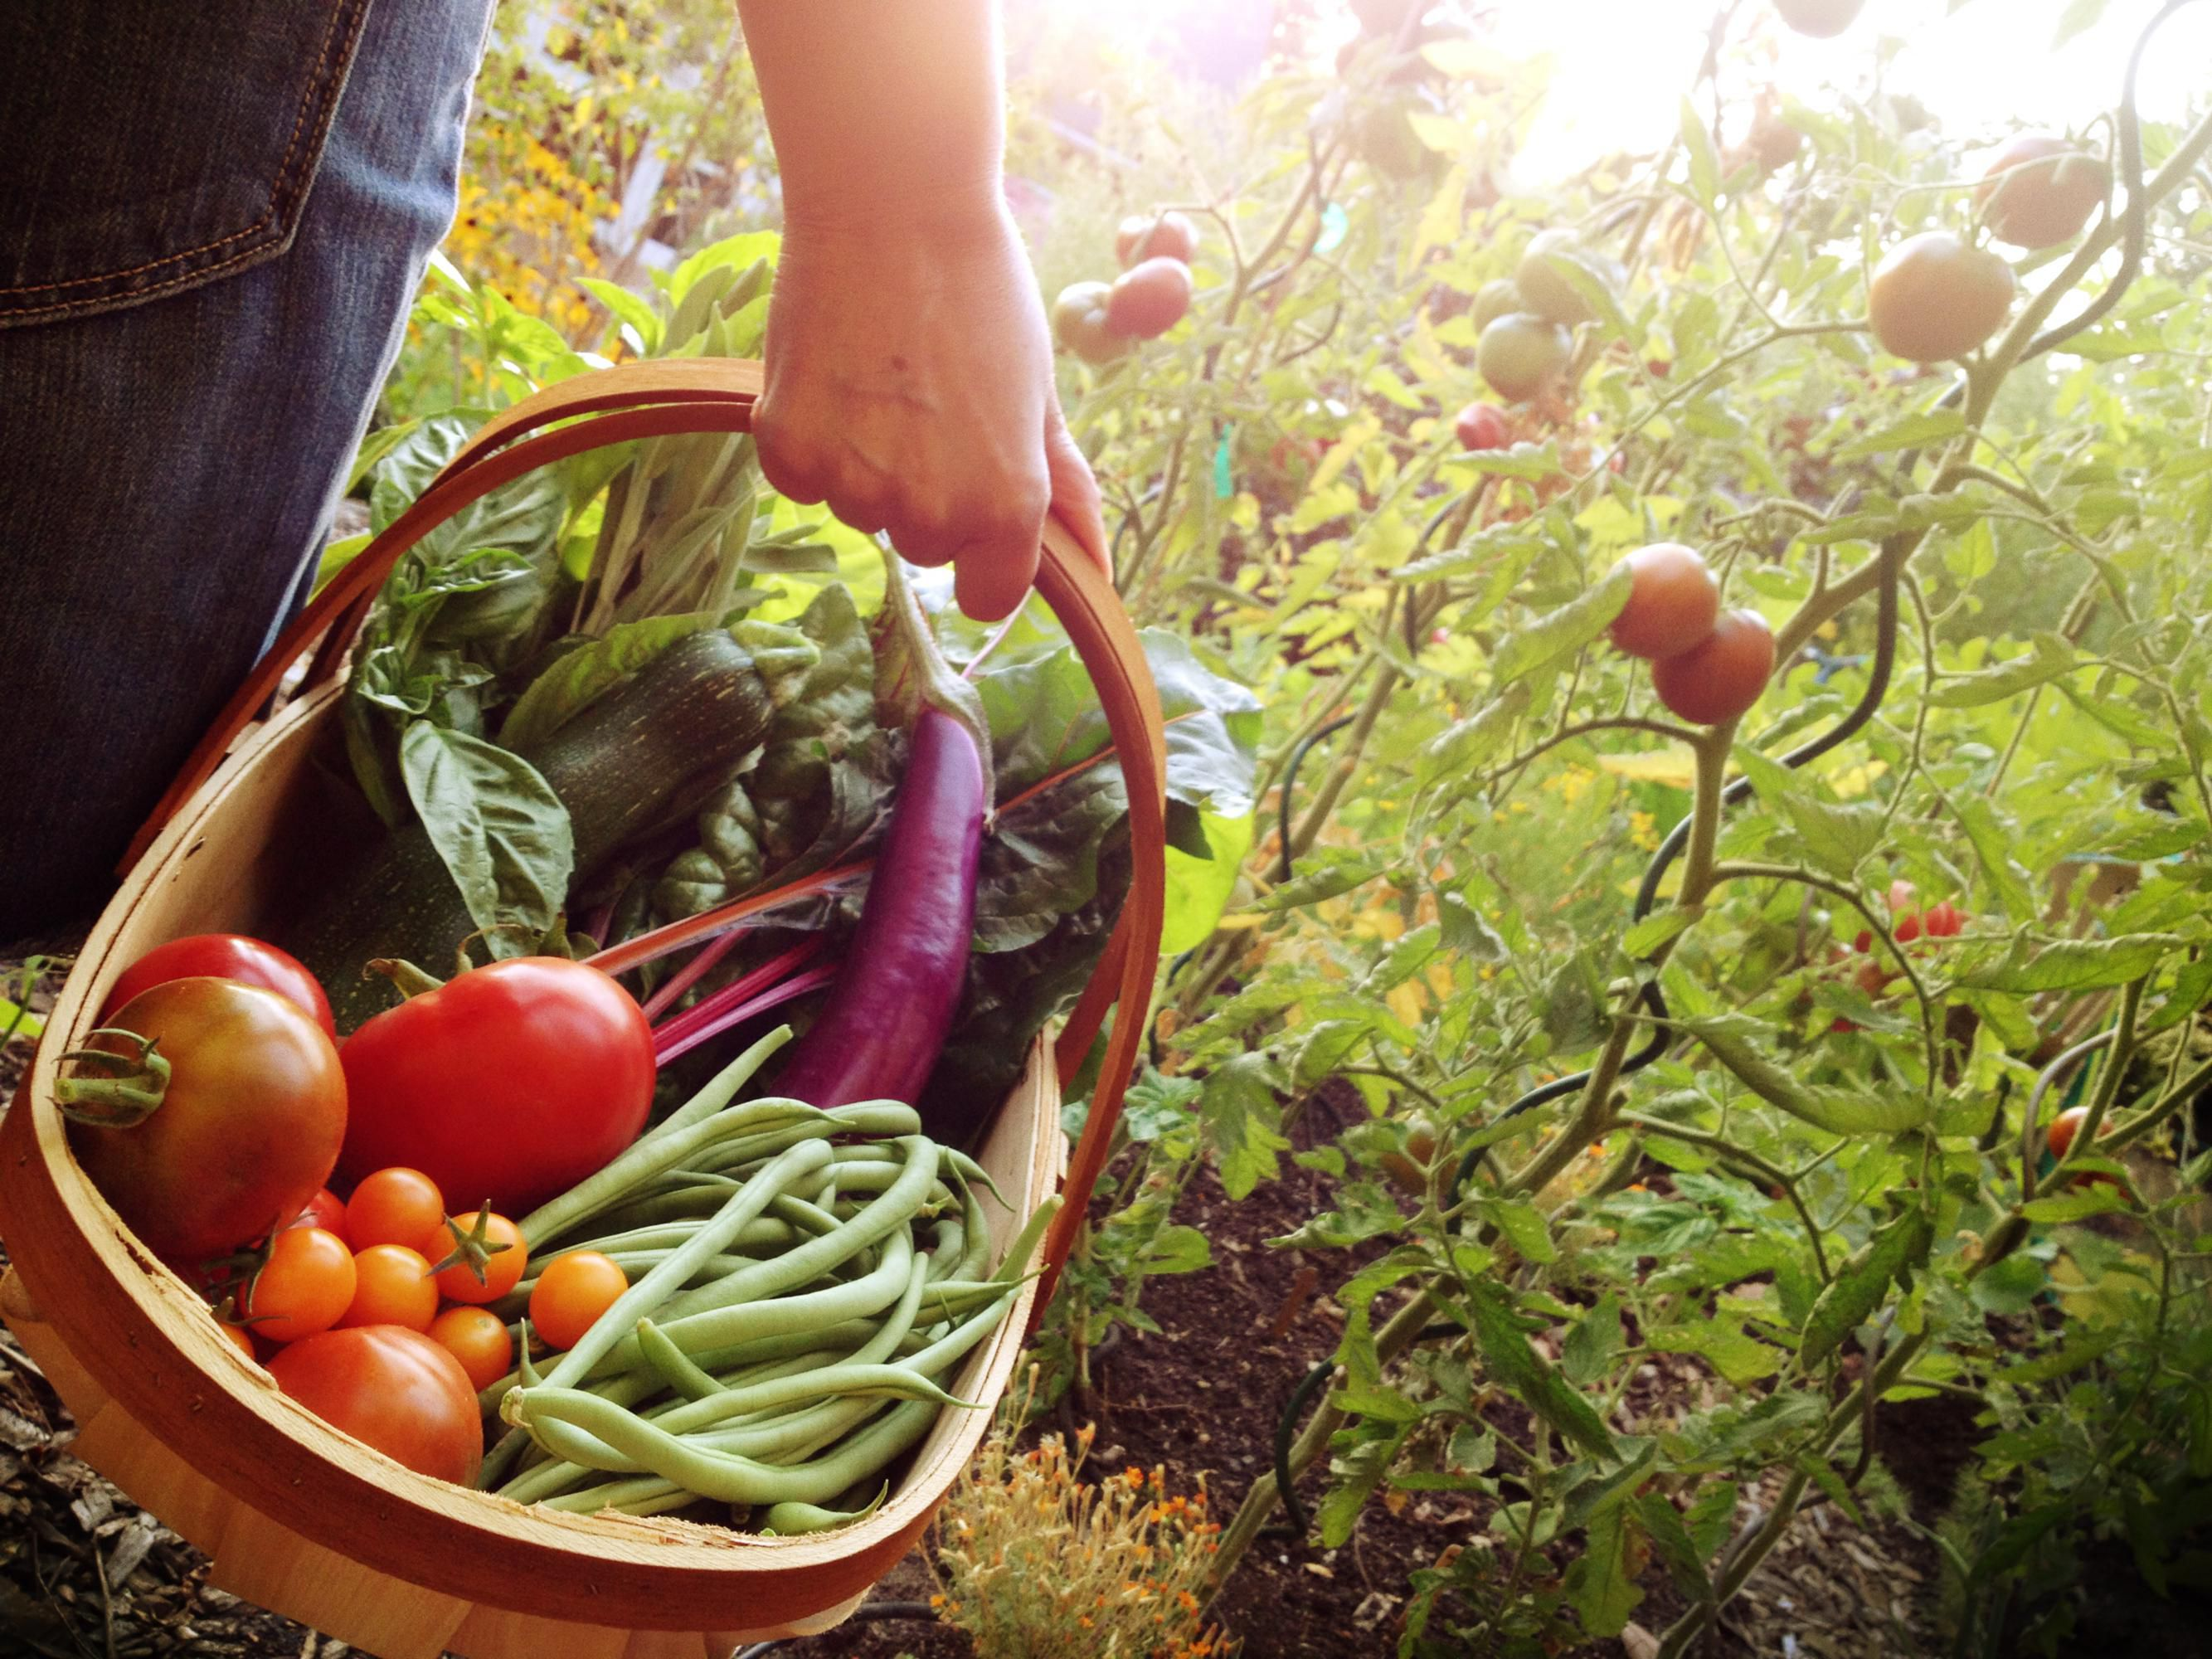 Deciding What Vegetables To Grow